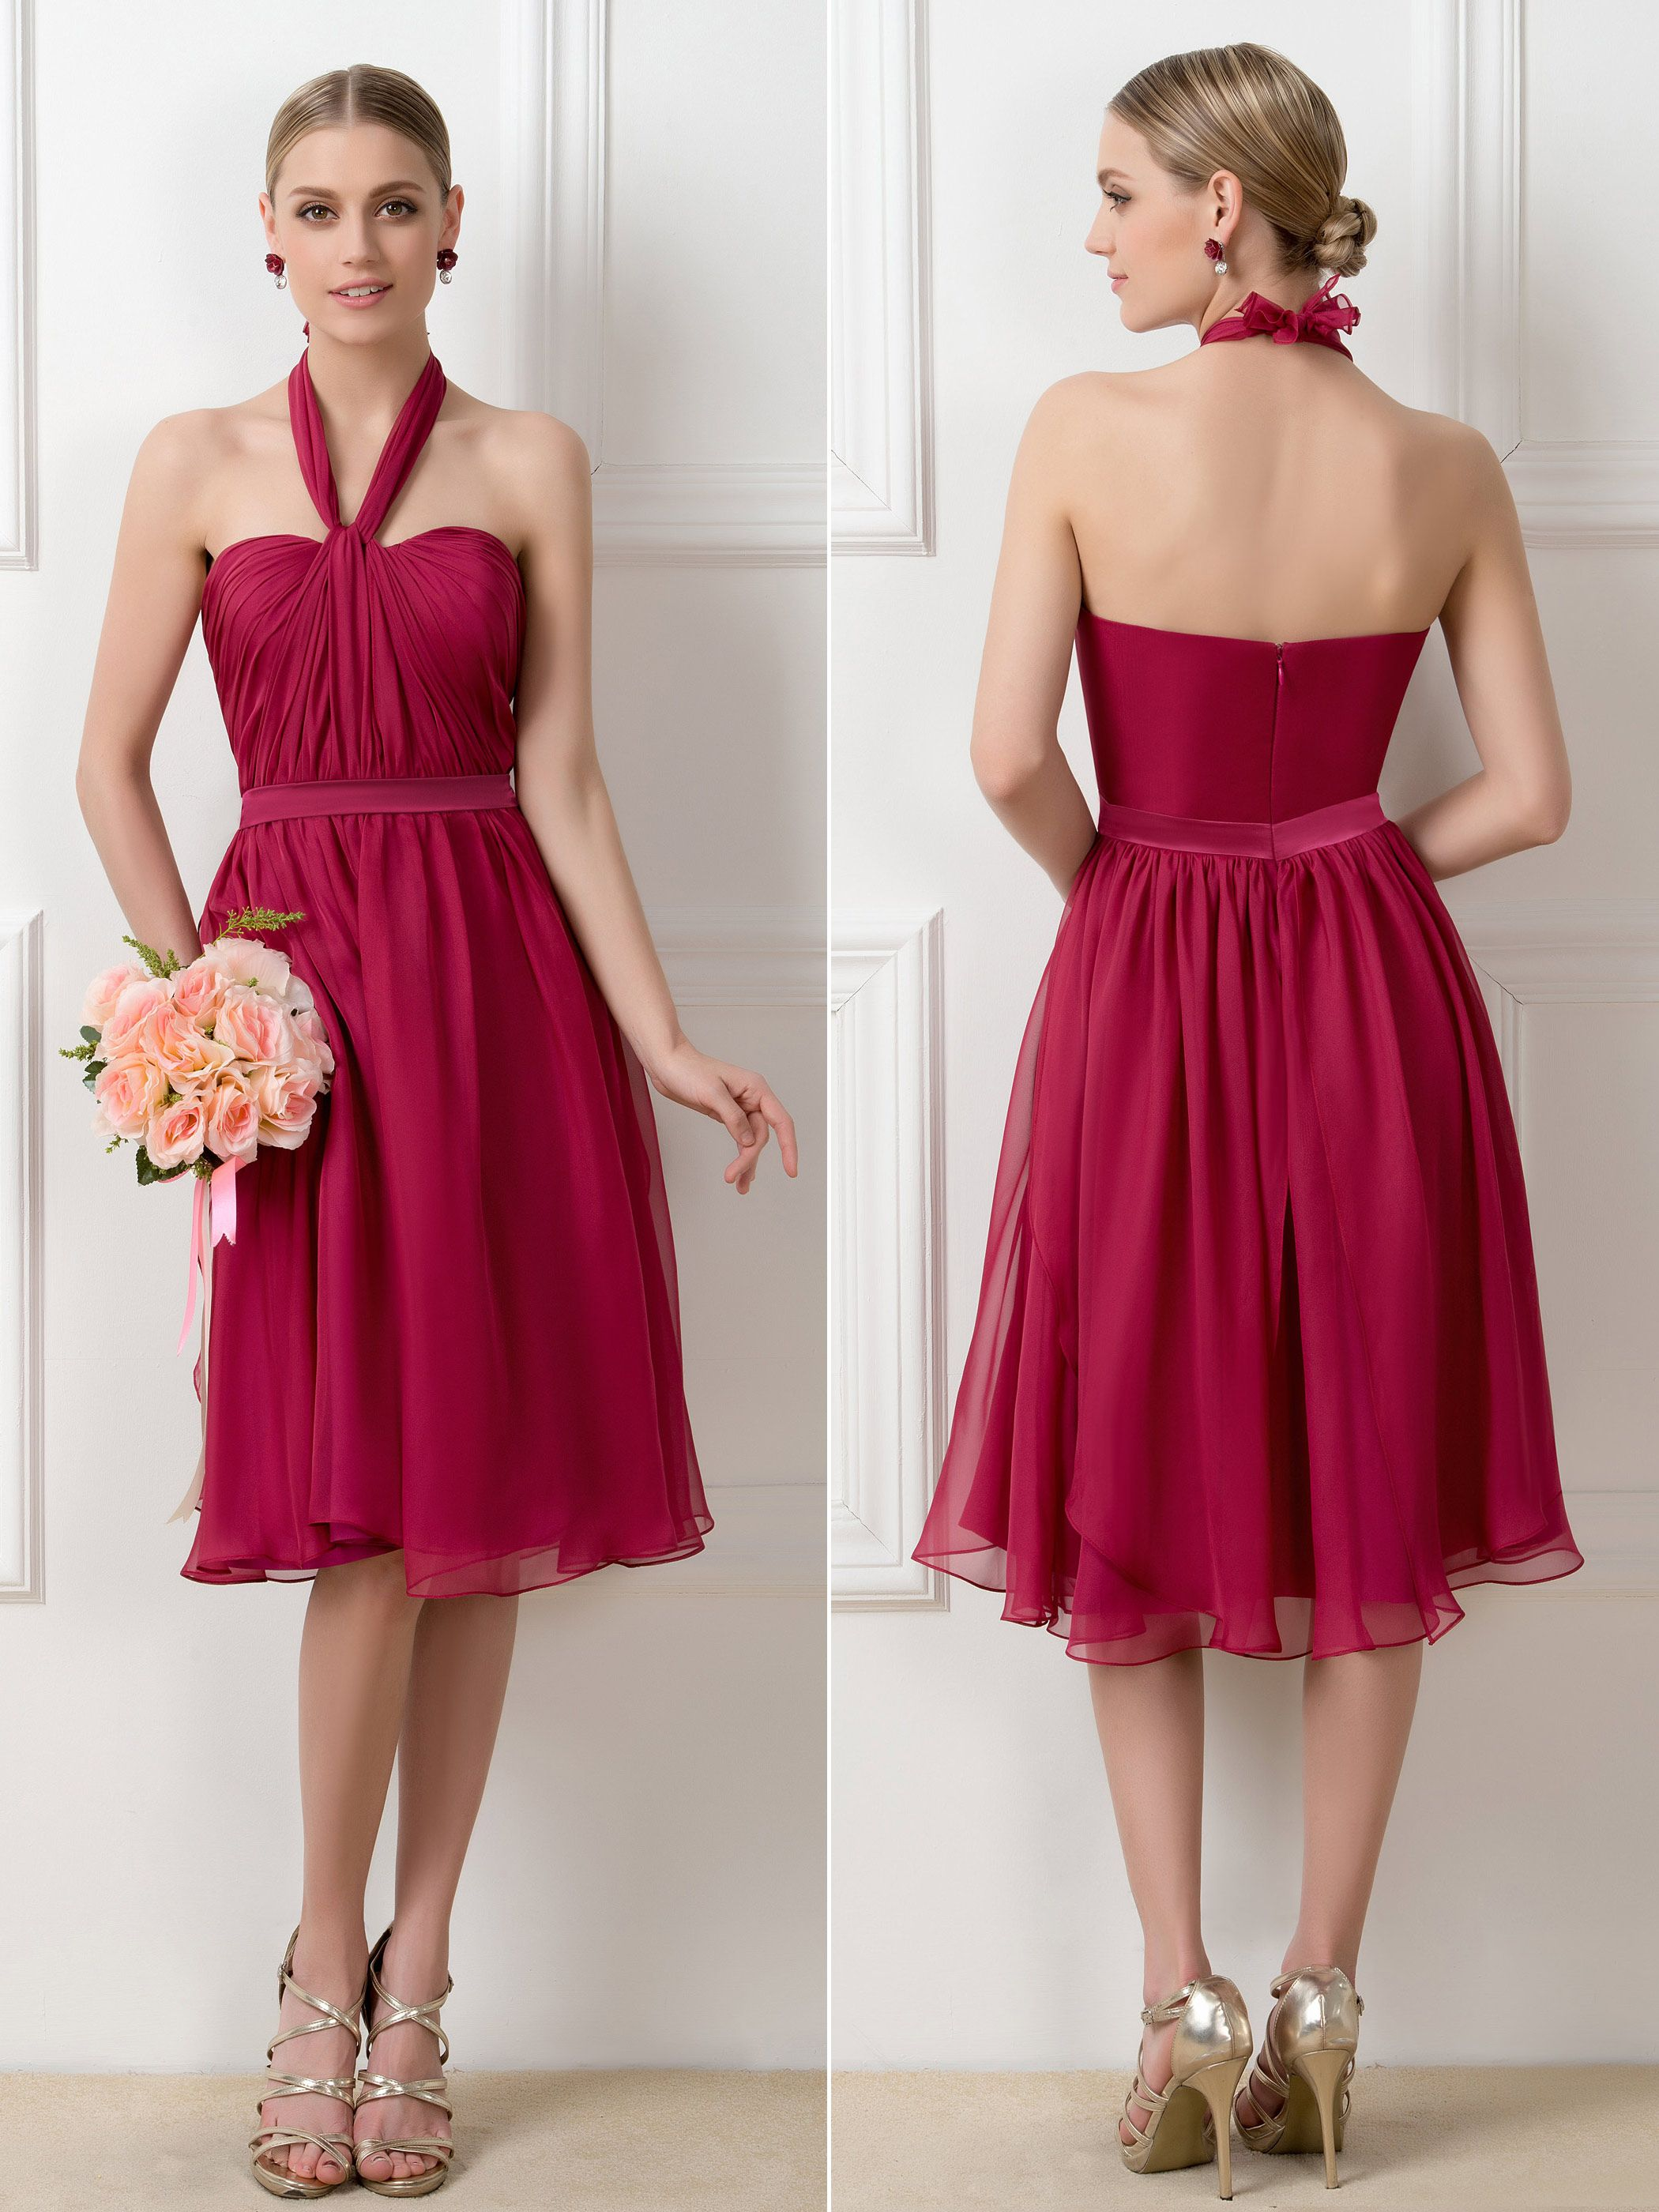 98c5f901737b A-Line Tea-Length Convertible Short Bridesmaid Dresses | TBdress ...